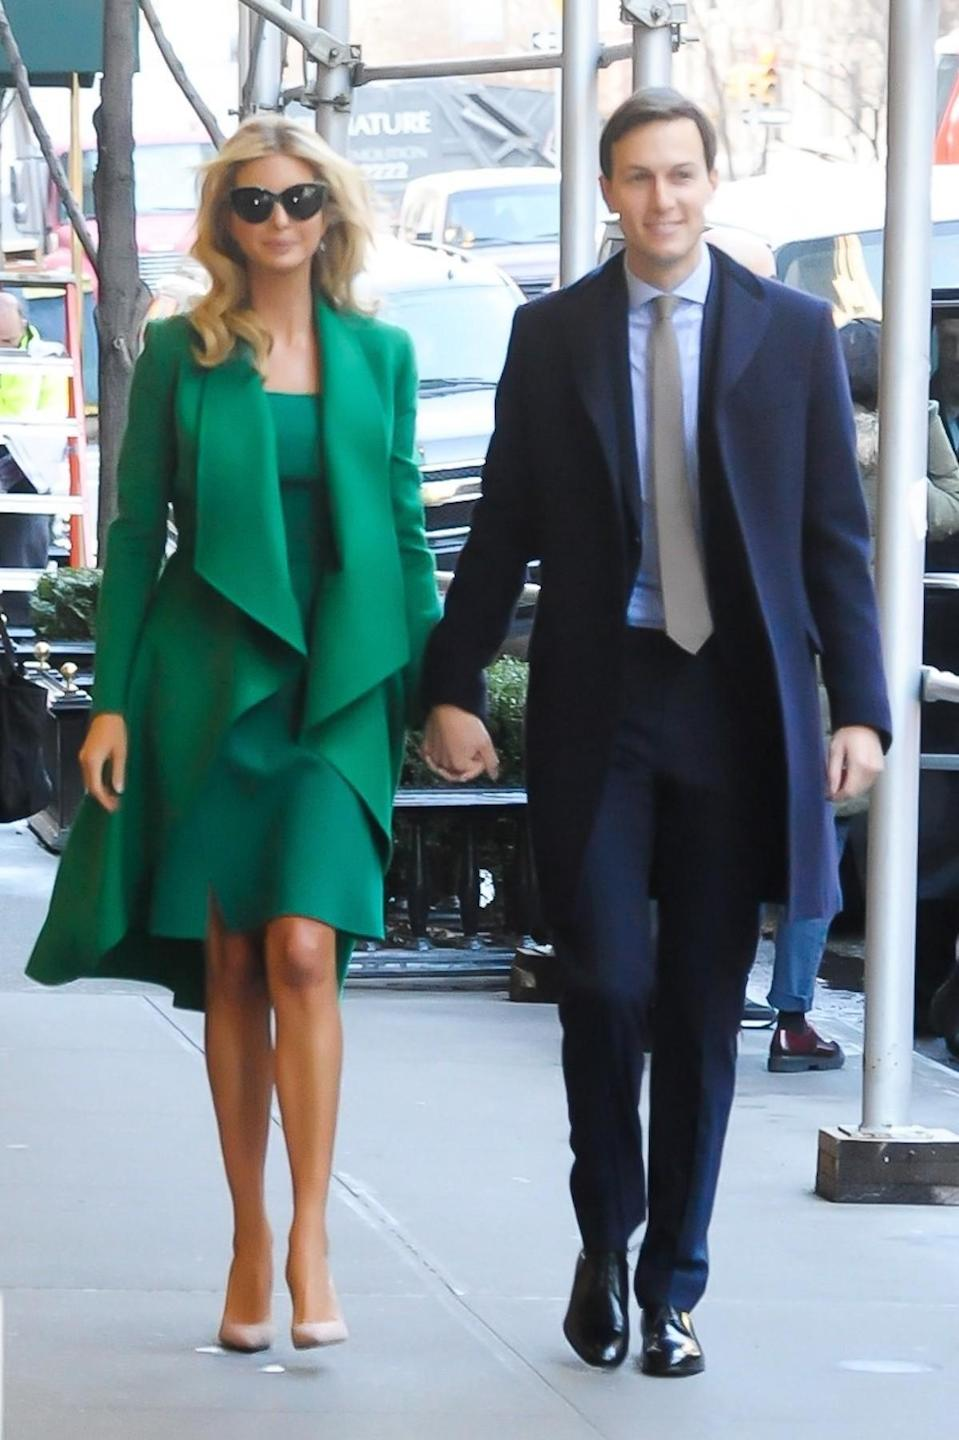 <p>Ivanka wore a green dress with a matching coat from designer Oscar de la Renta on Jan. 19, 2017 in New York City, the day before her father's inauguration. (Photo: AKM-GSI) </p>